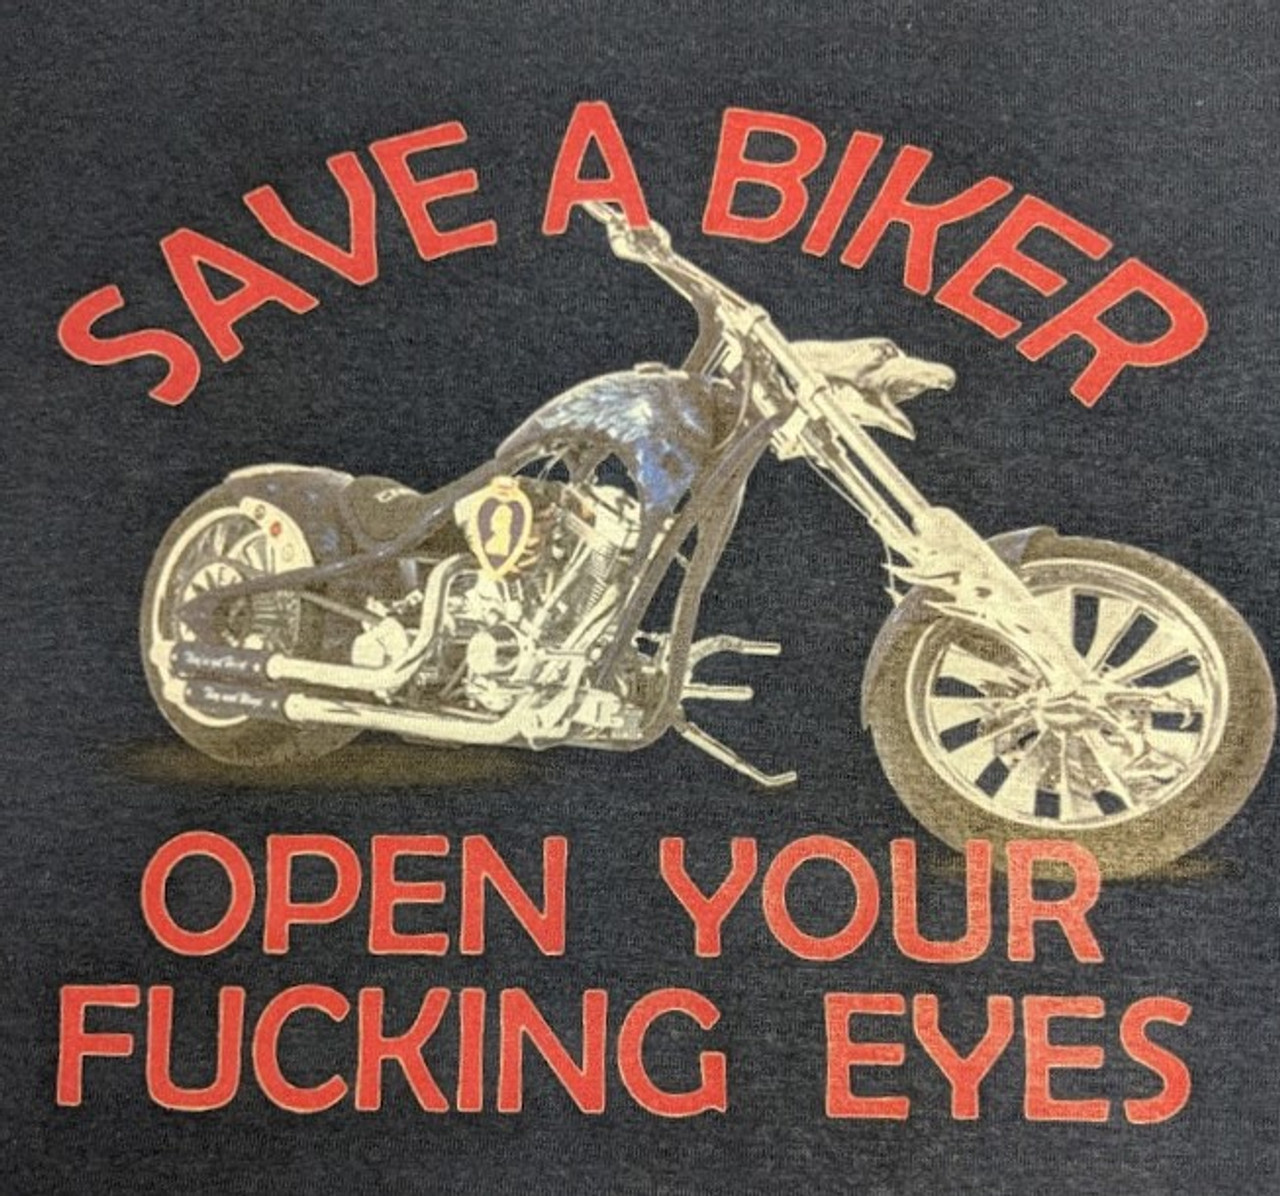 67ec4d205 Save a Biker Open Your Fucking Eyes T-Shirt and motorcycle shirts